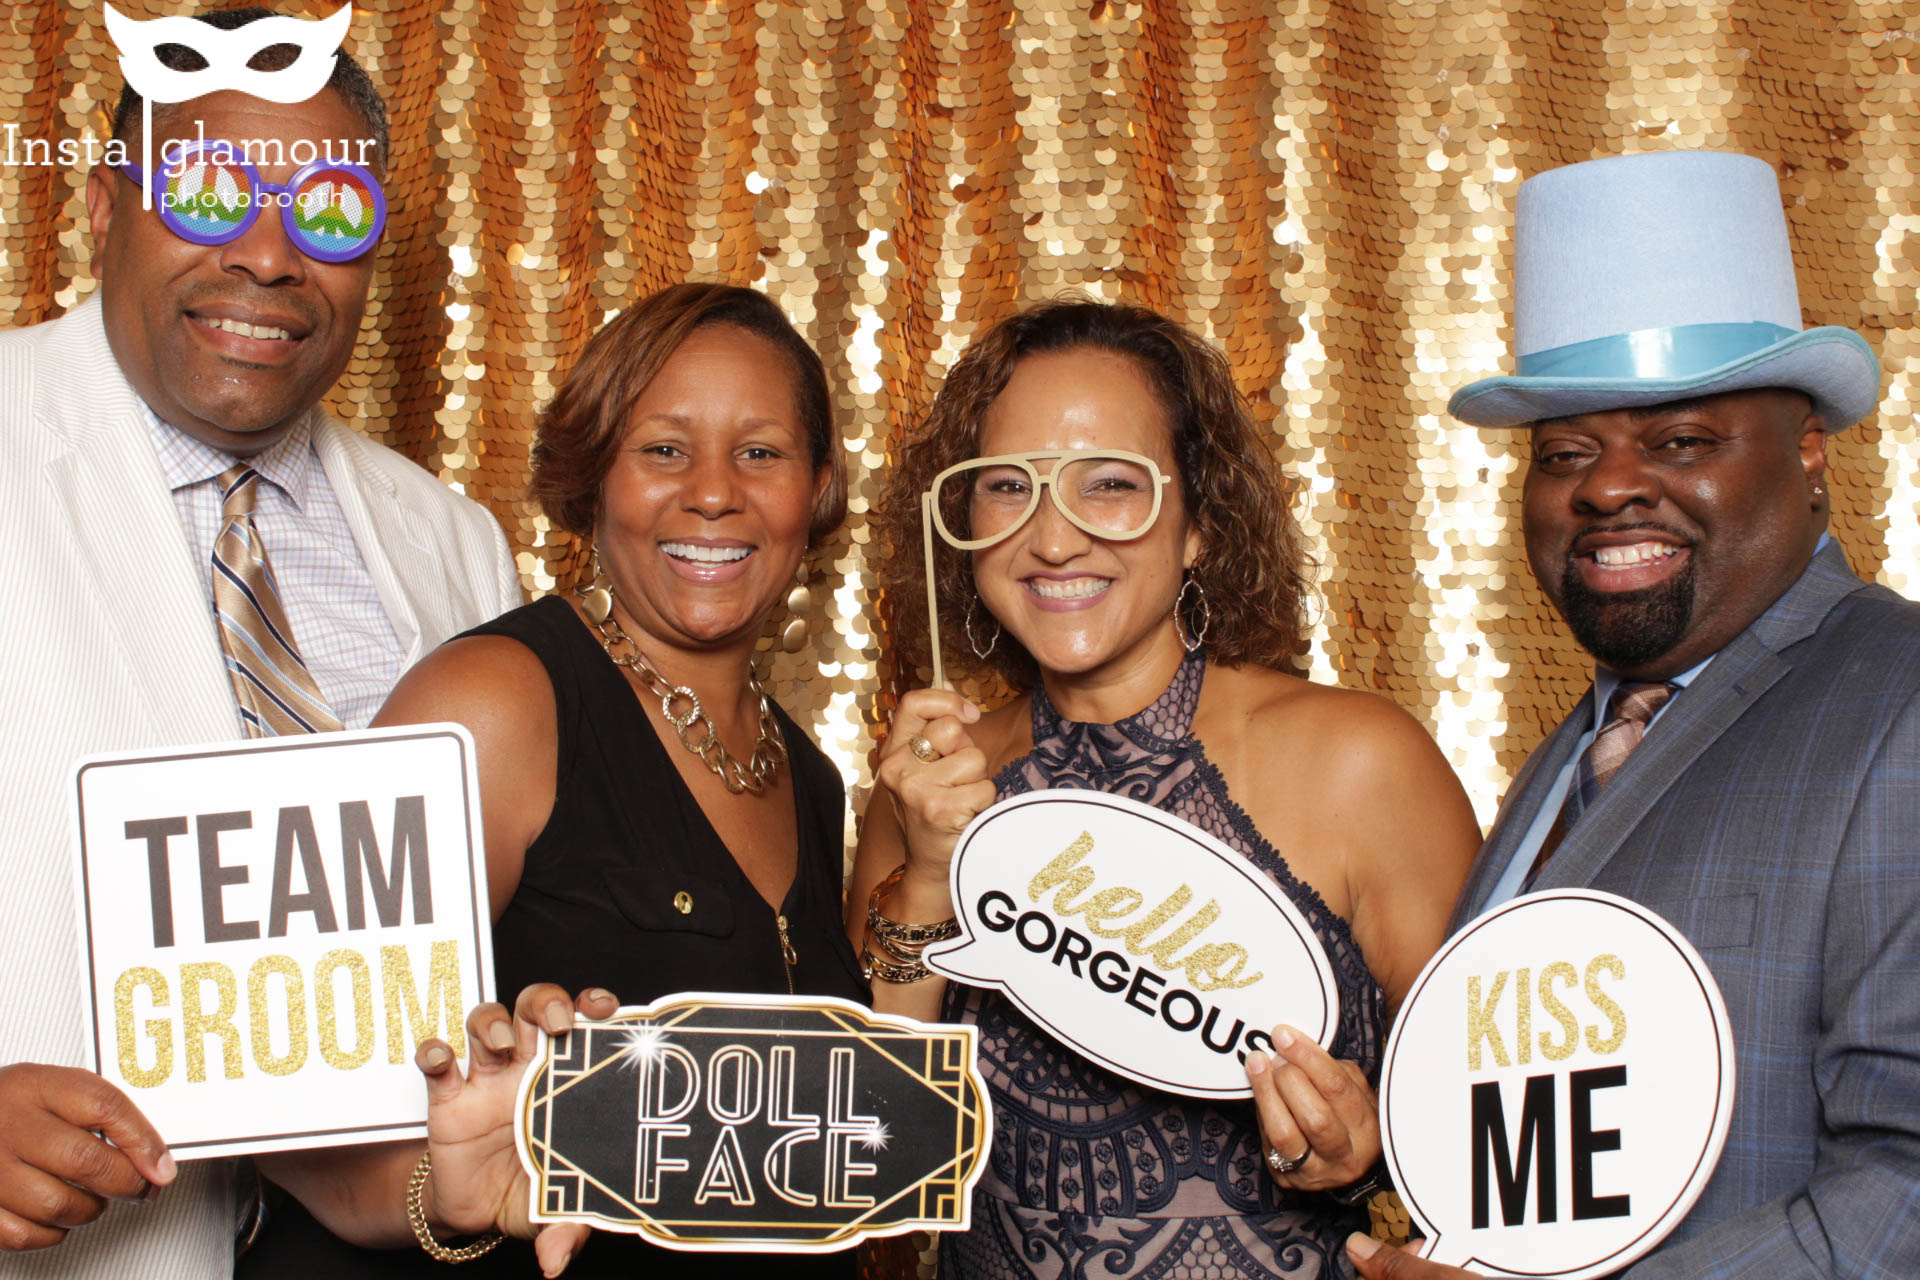 philly photo booth, philadelphia Photo Booth rental